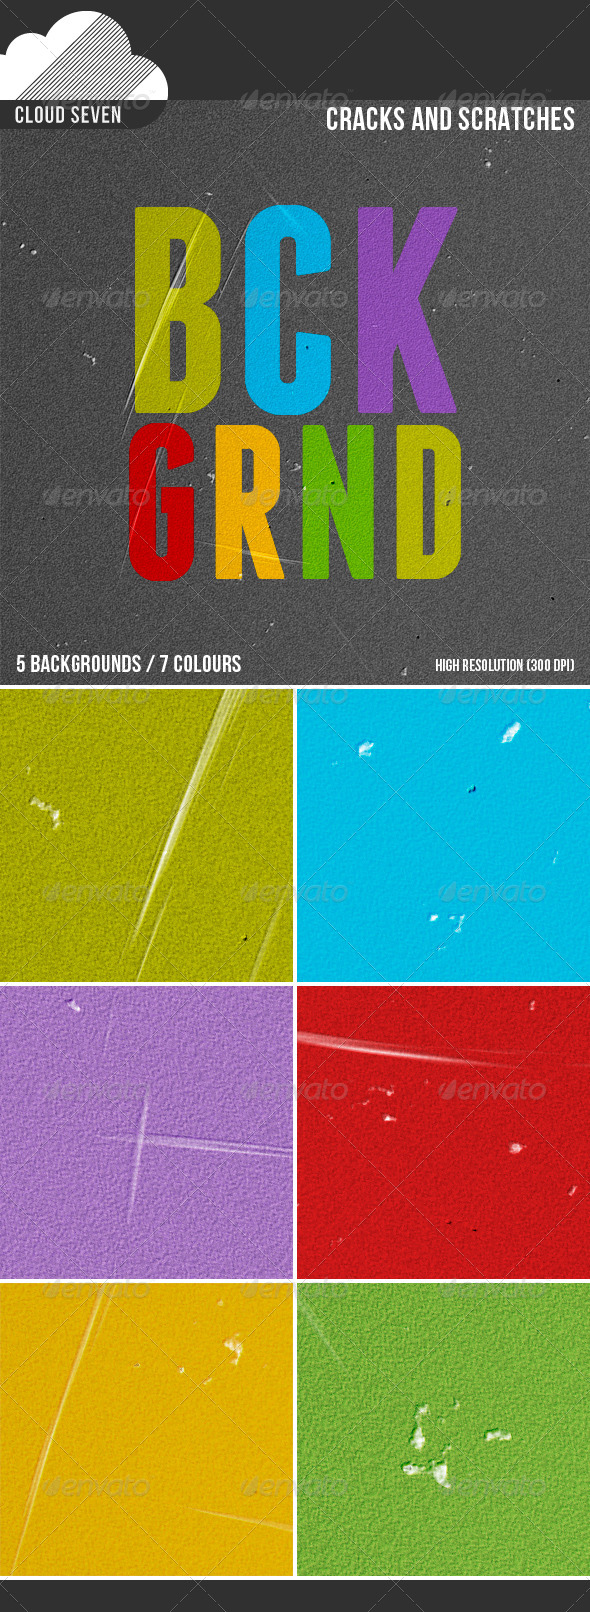 GraphicRiver Cracks and Scratches Backgrounds 4892186